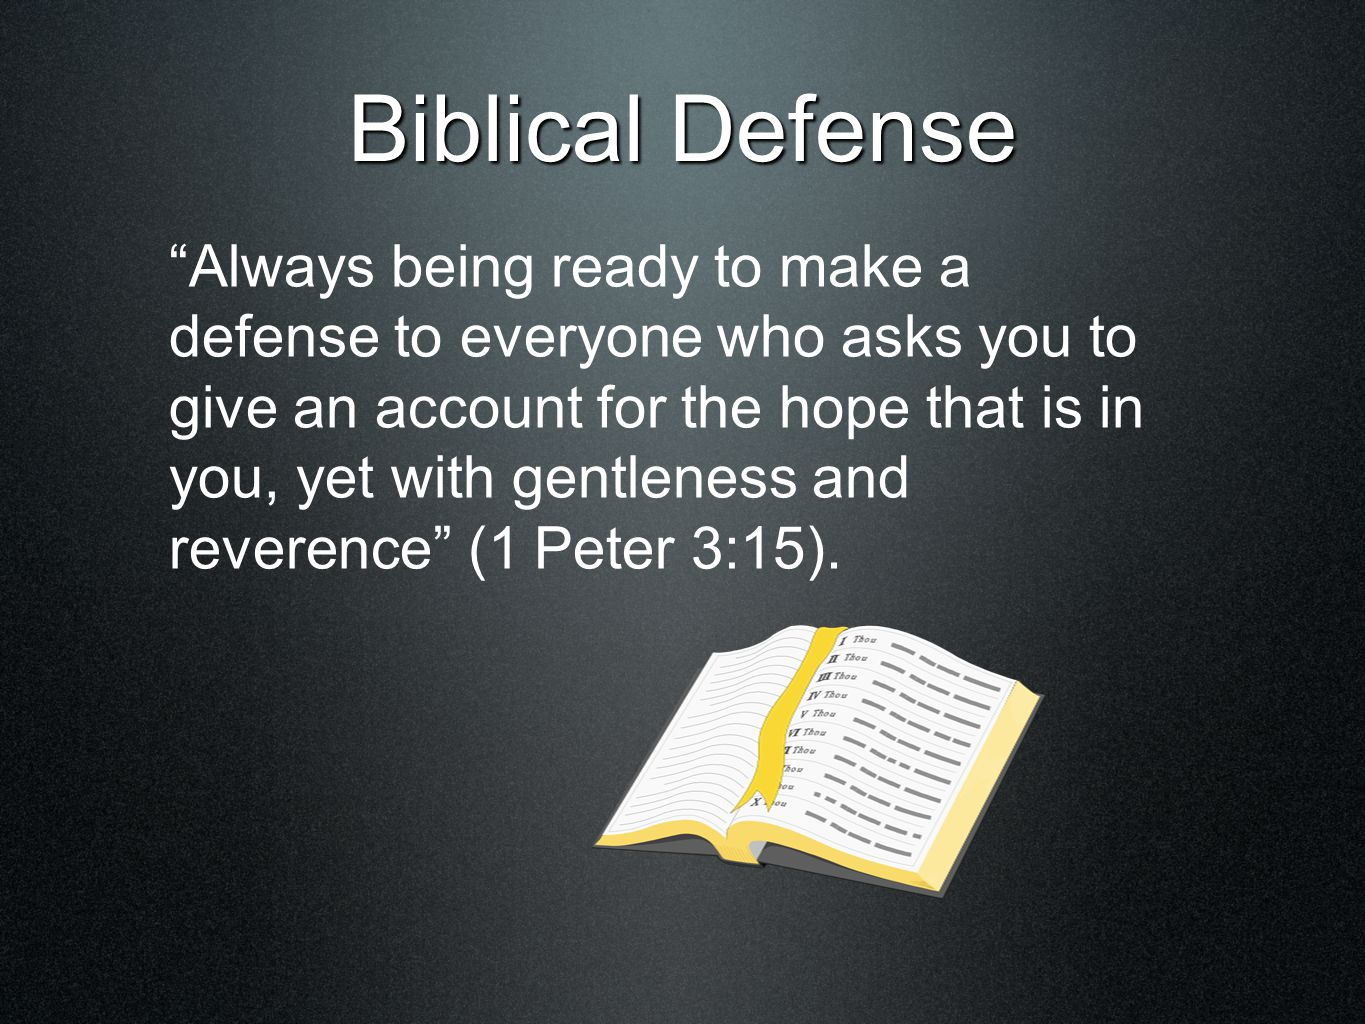 Biblical Defense Always being ready to make a defense to everyone who asks you to give an account for the hope that is in you, yet with gentleness and reverence (1 Peter 3:15).